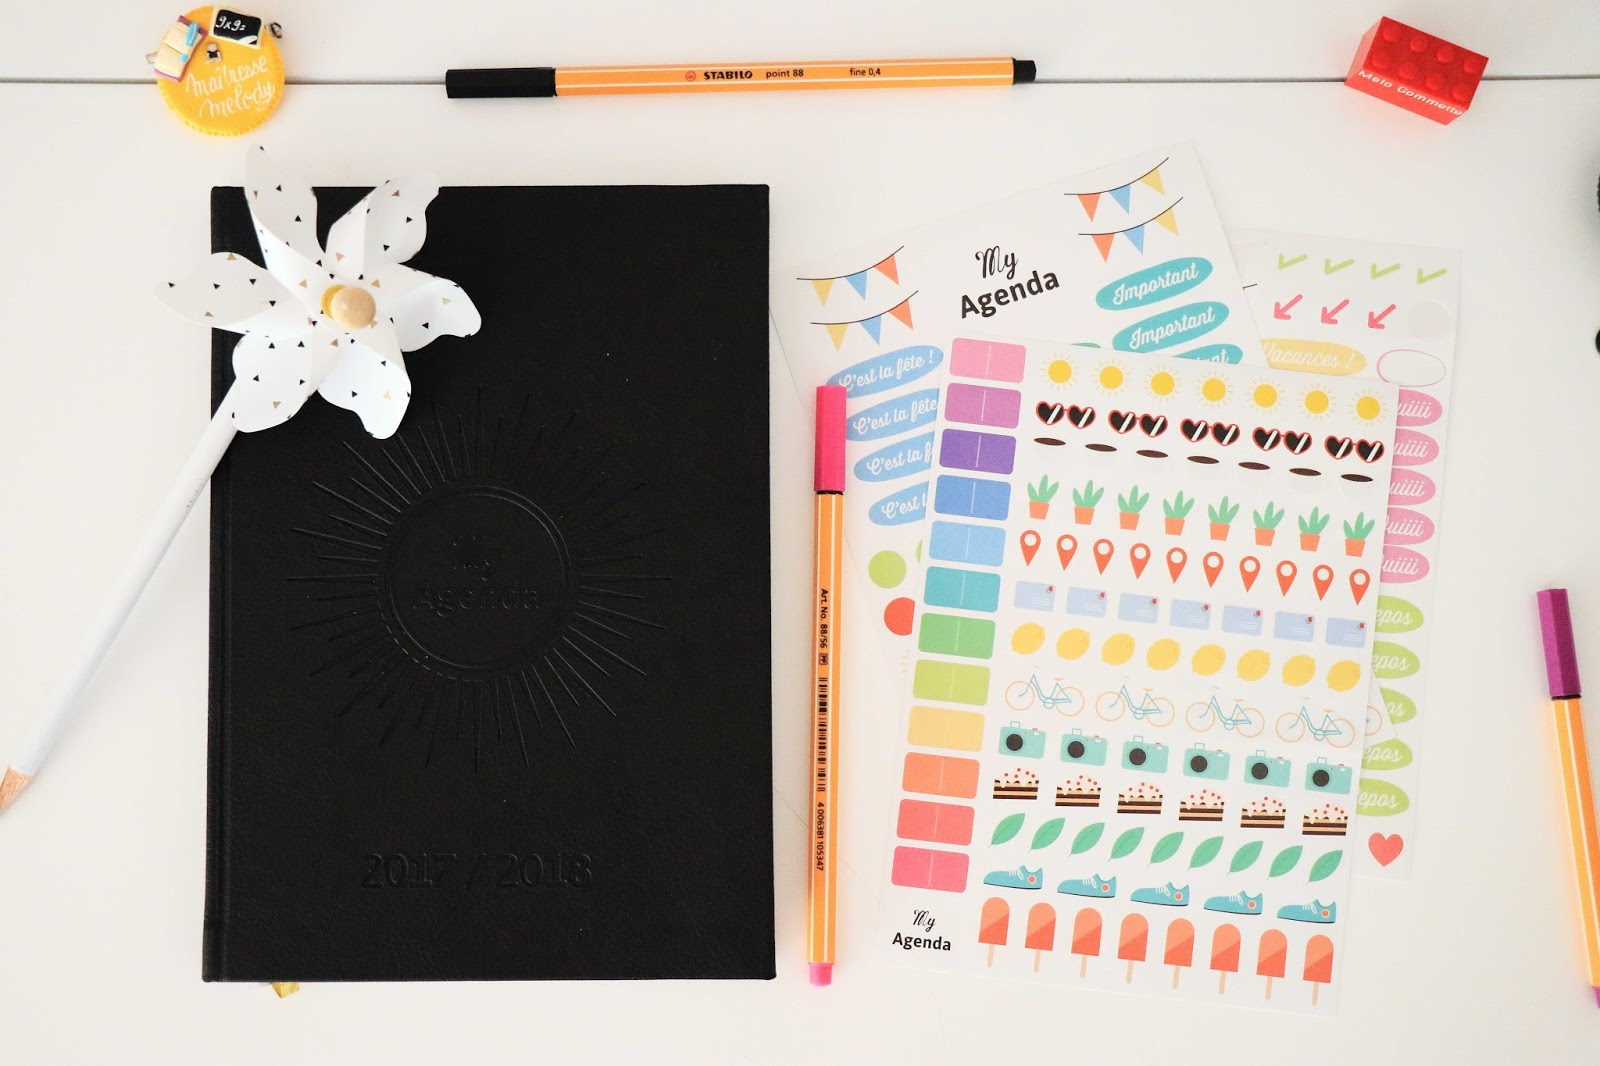 myagenda 365 agenda scolaire bullet journal bujo organisation maitresse ecole lycee universite facile comment concours à gagner made in france recyclé vegan